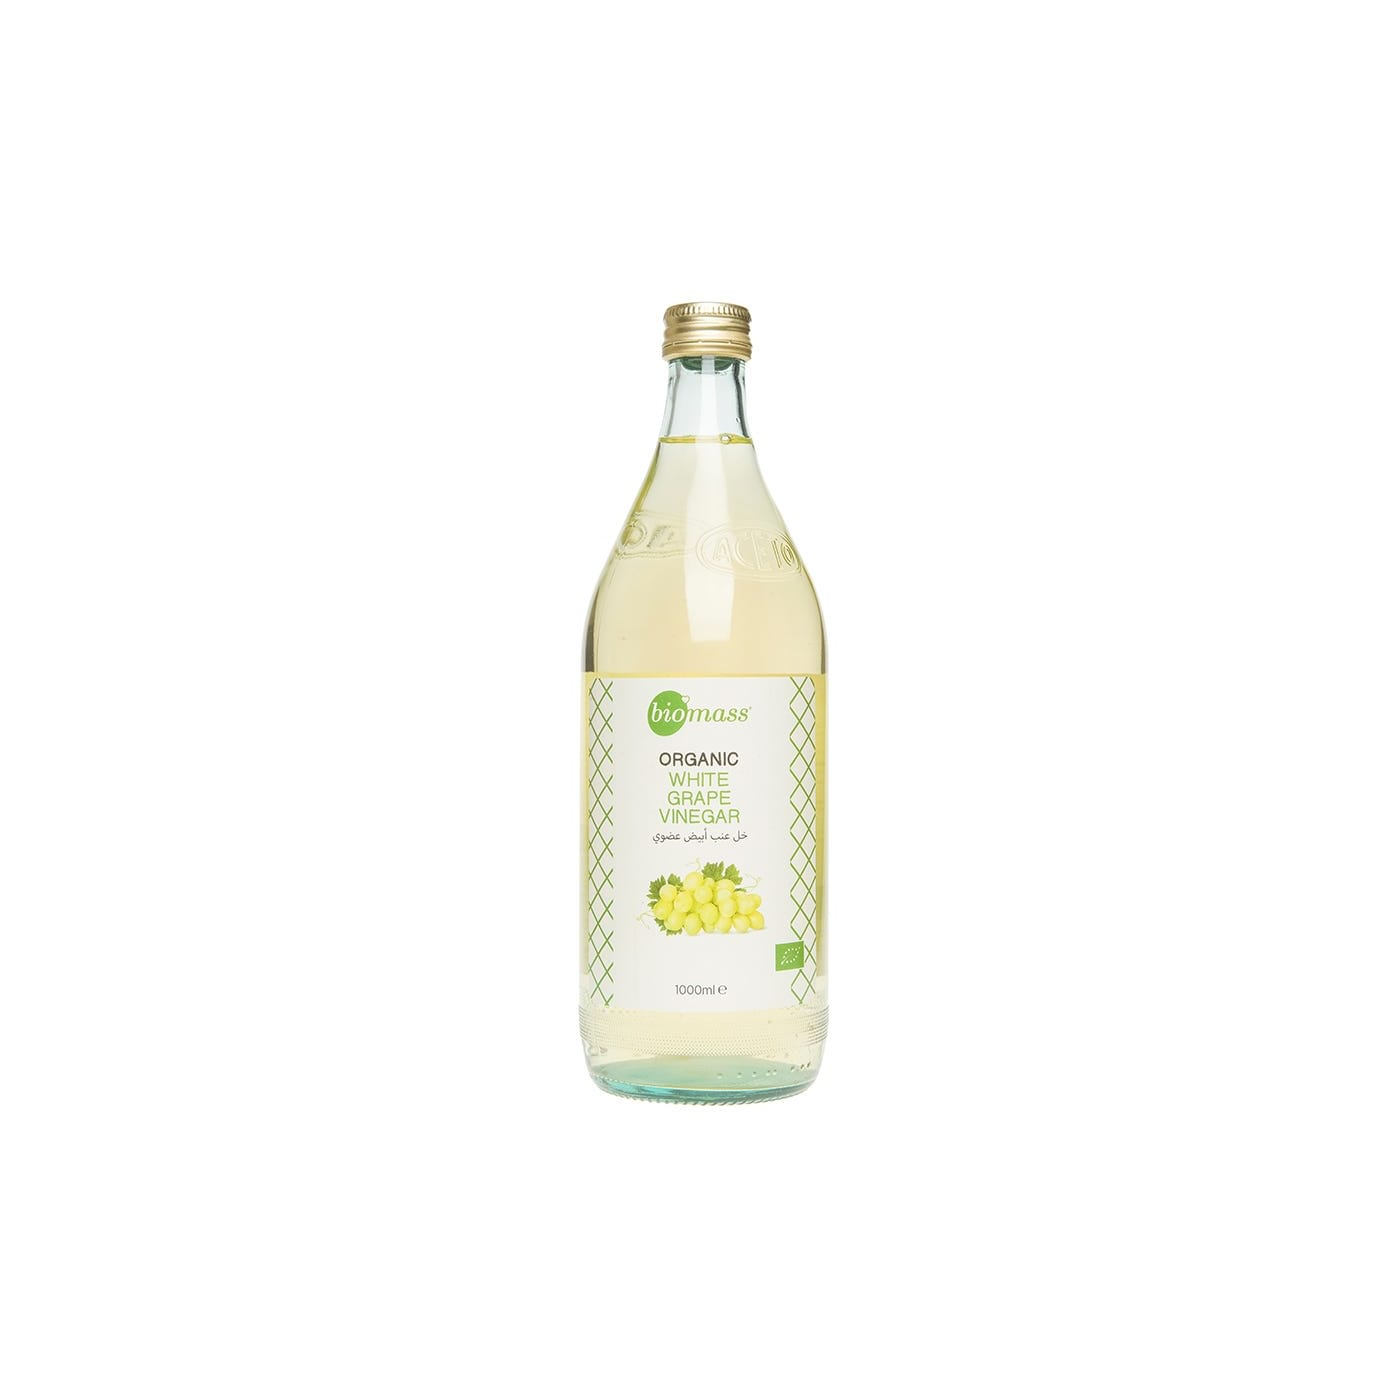 Biomass Organic White Grape Vinegar (Bottle - 1000ml)